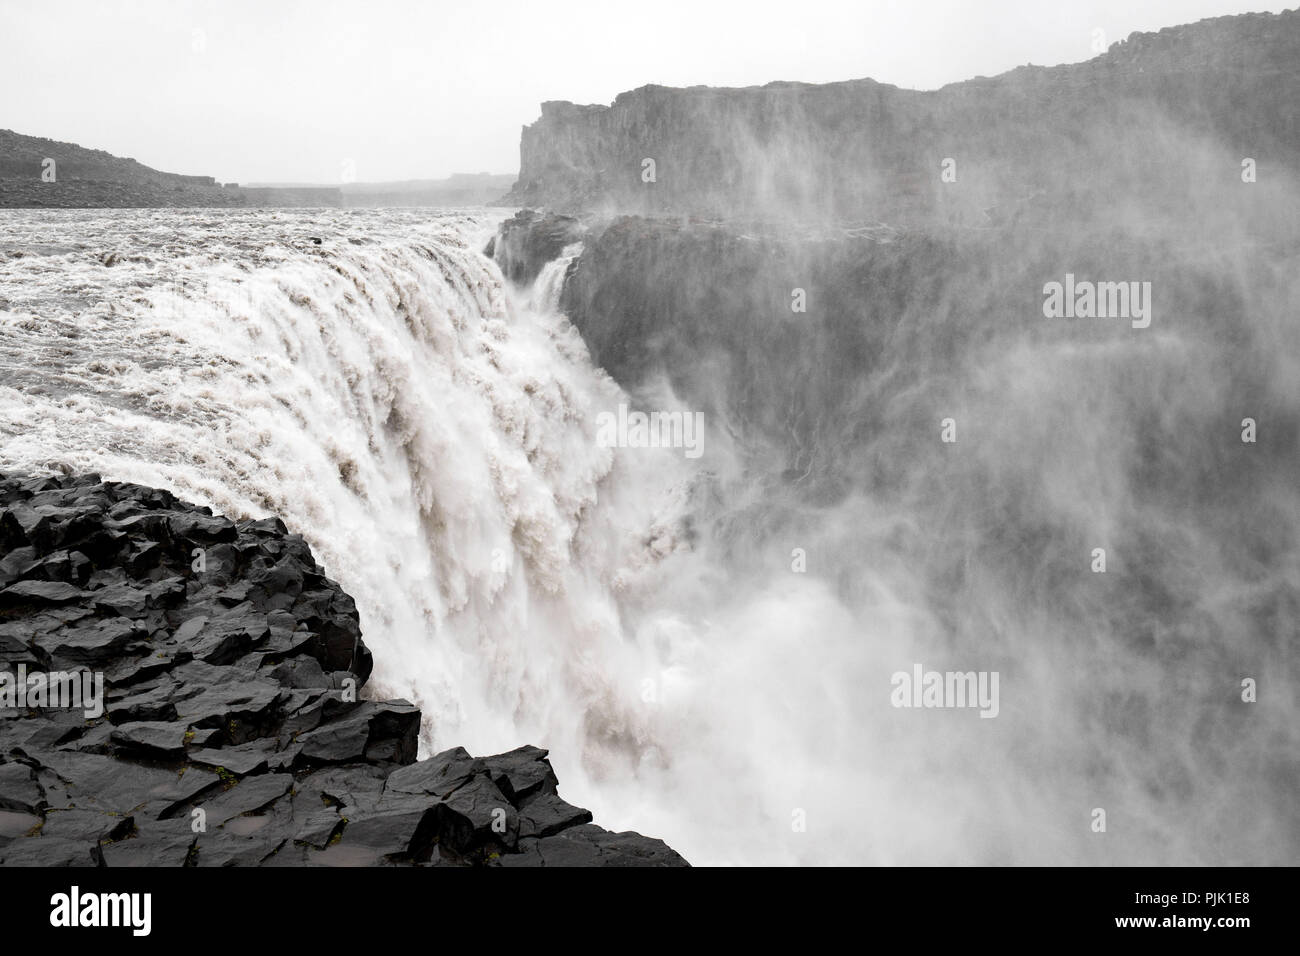 The mighty waterfall Dettifoss in a rough rocky environment Stock Photo